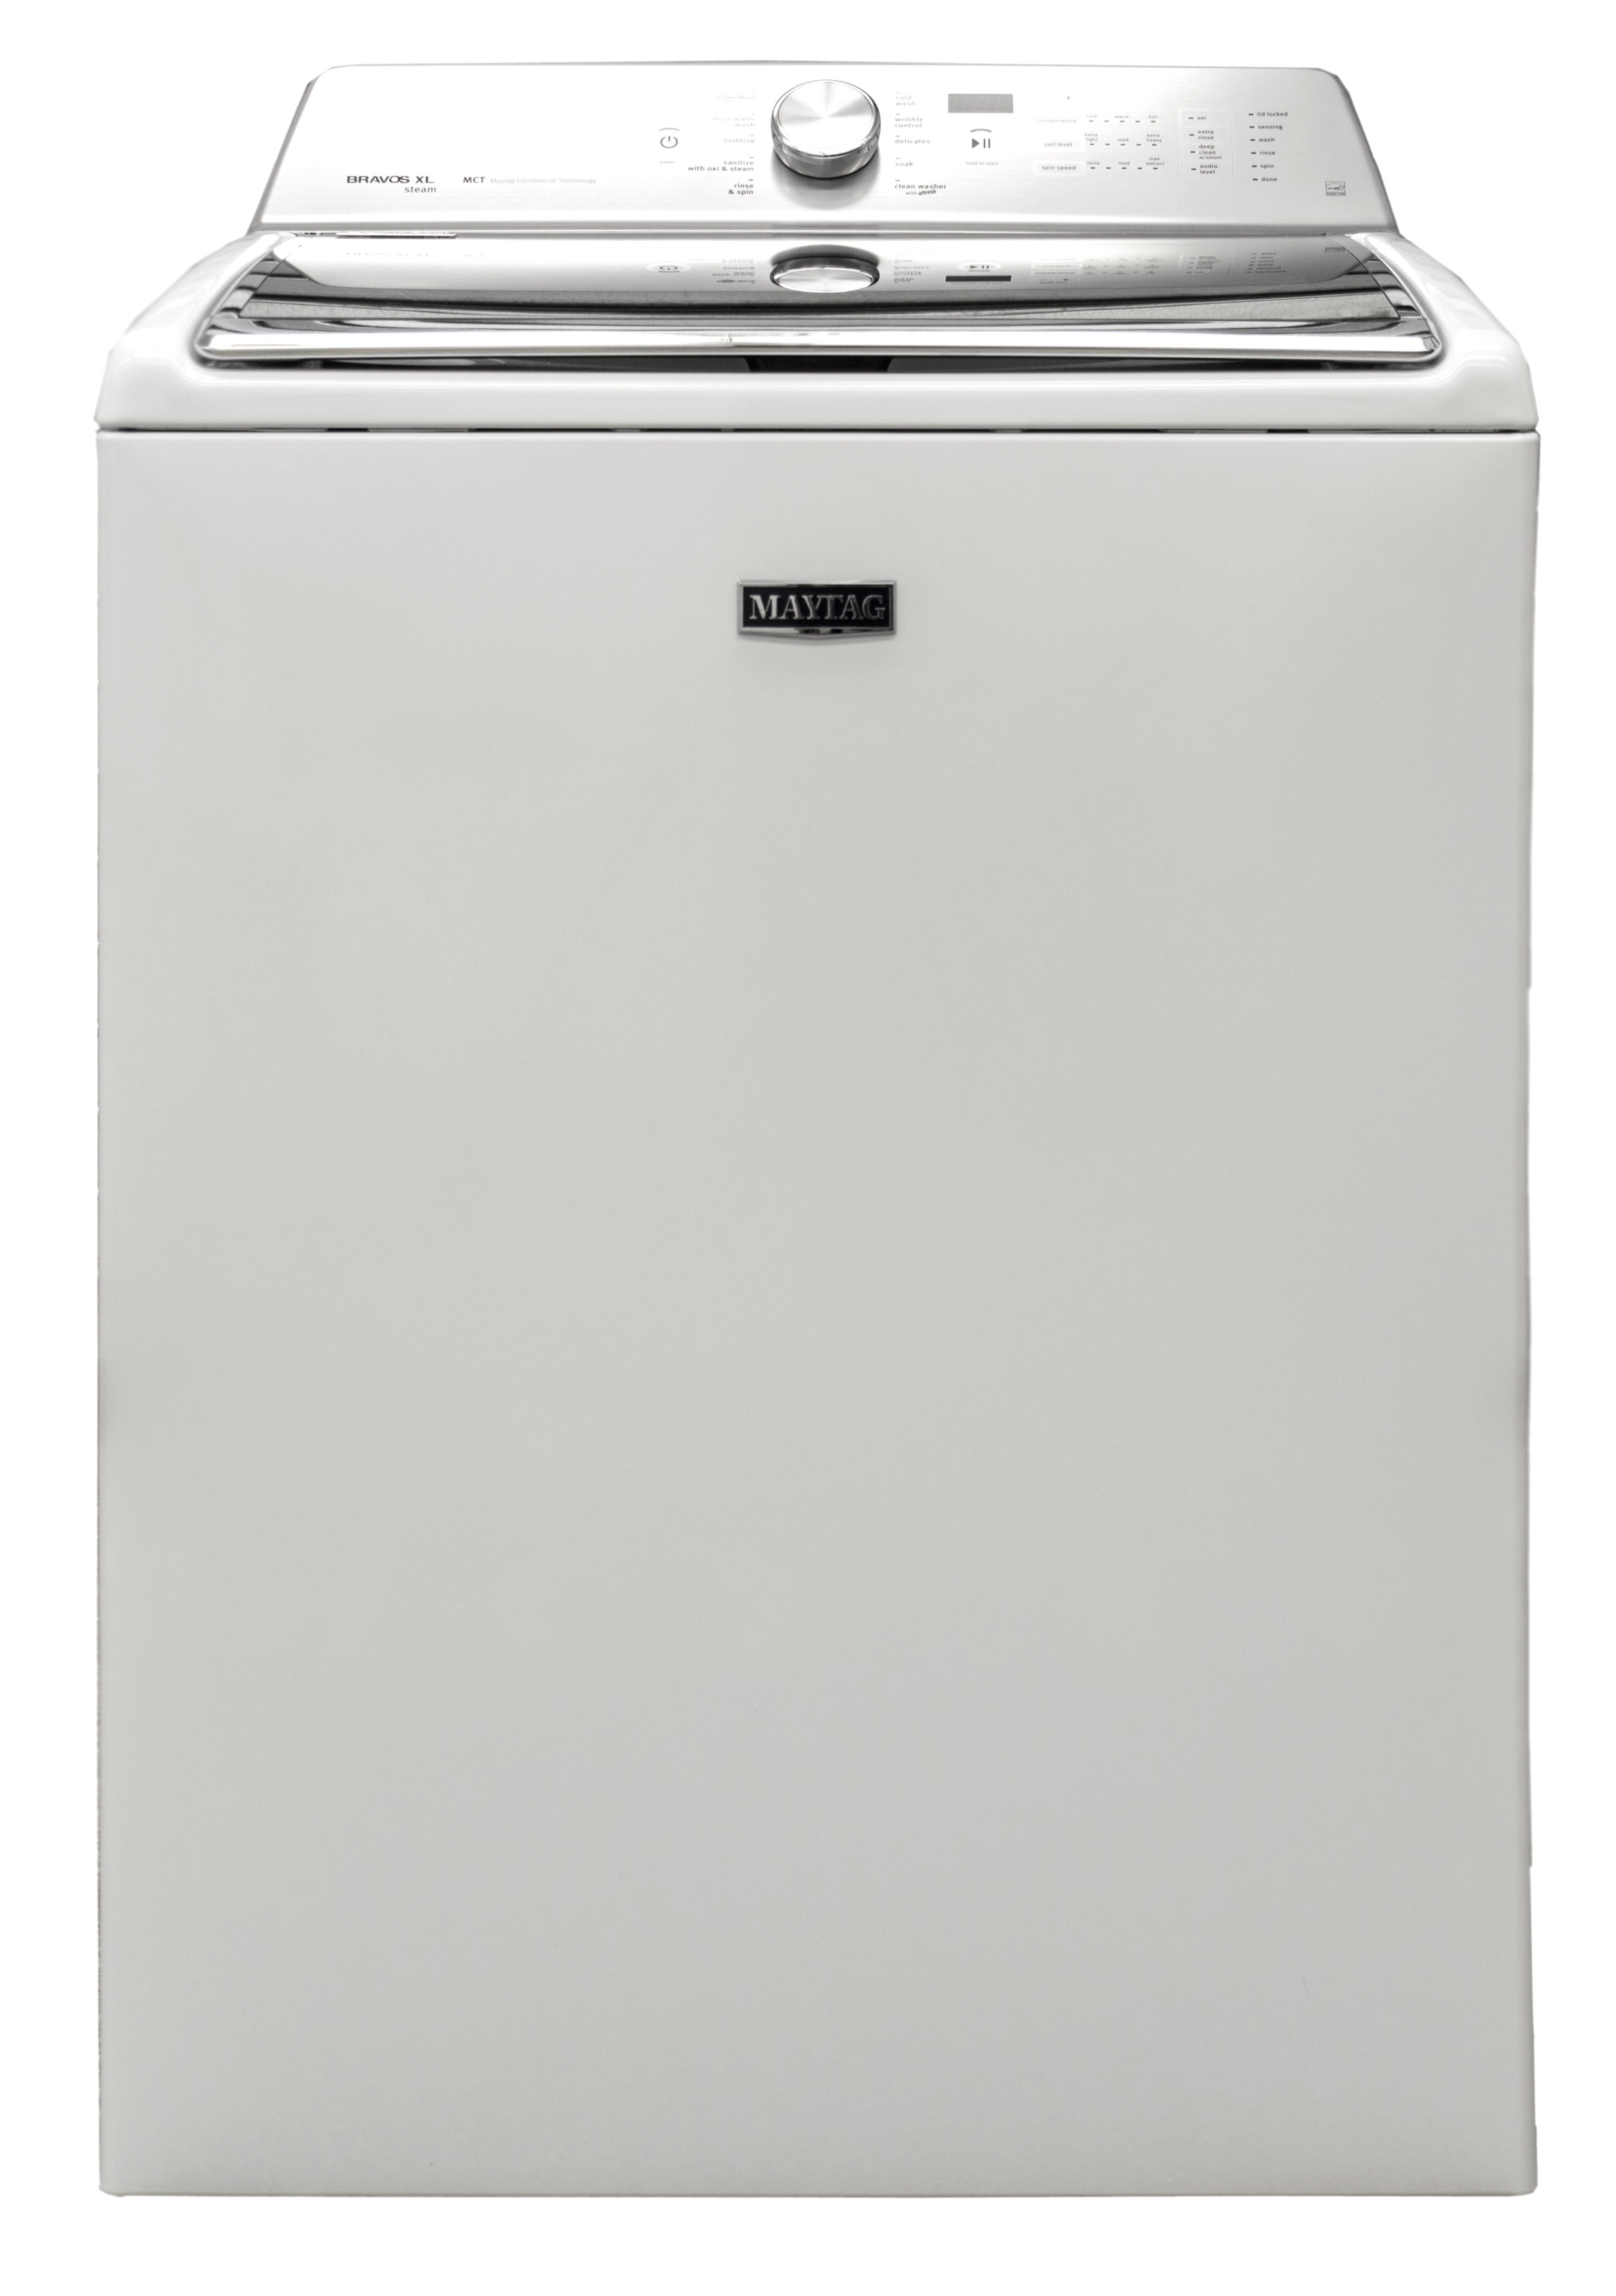 Maytag Washing Machine ~ Maytag bravos xl mvwb dw washing machine review